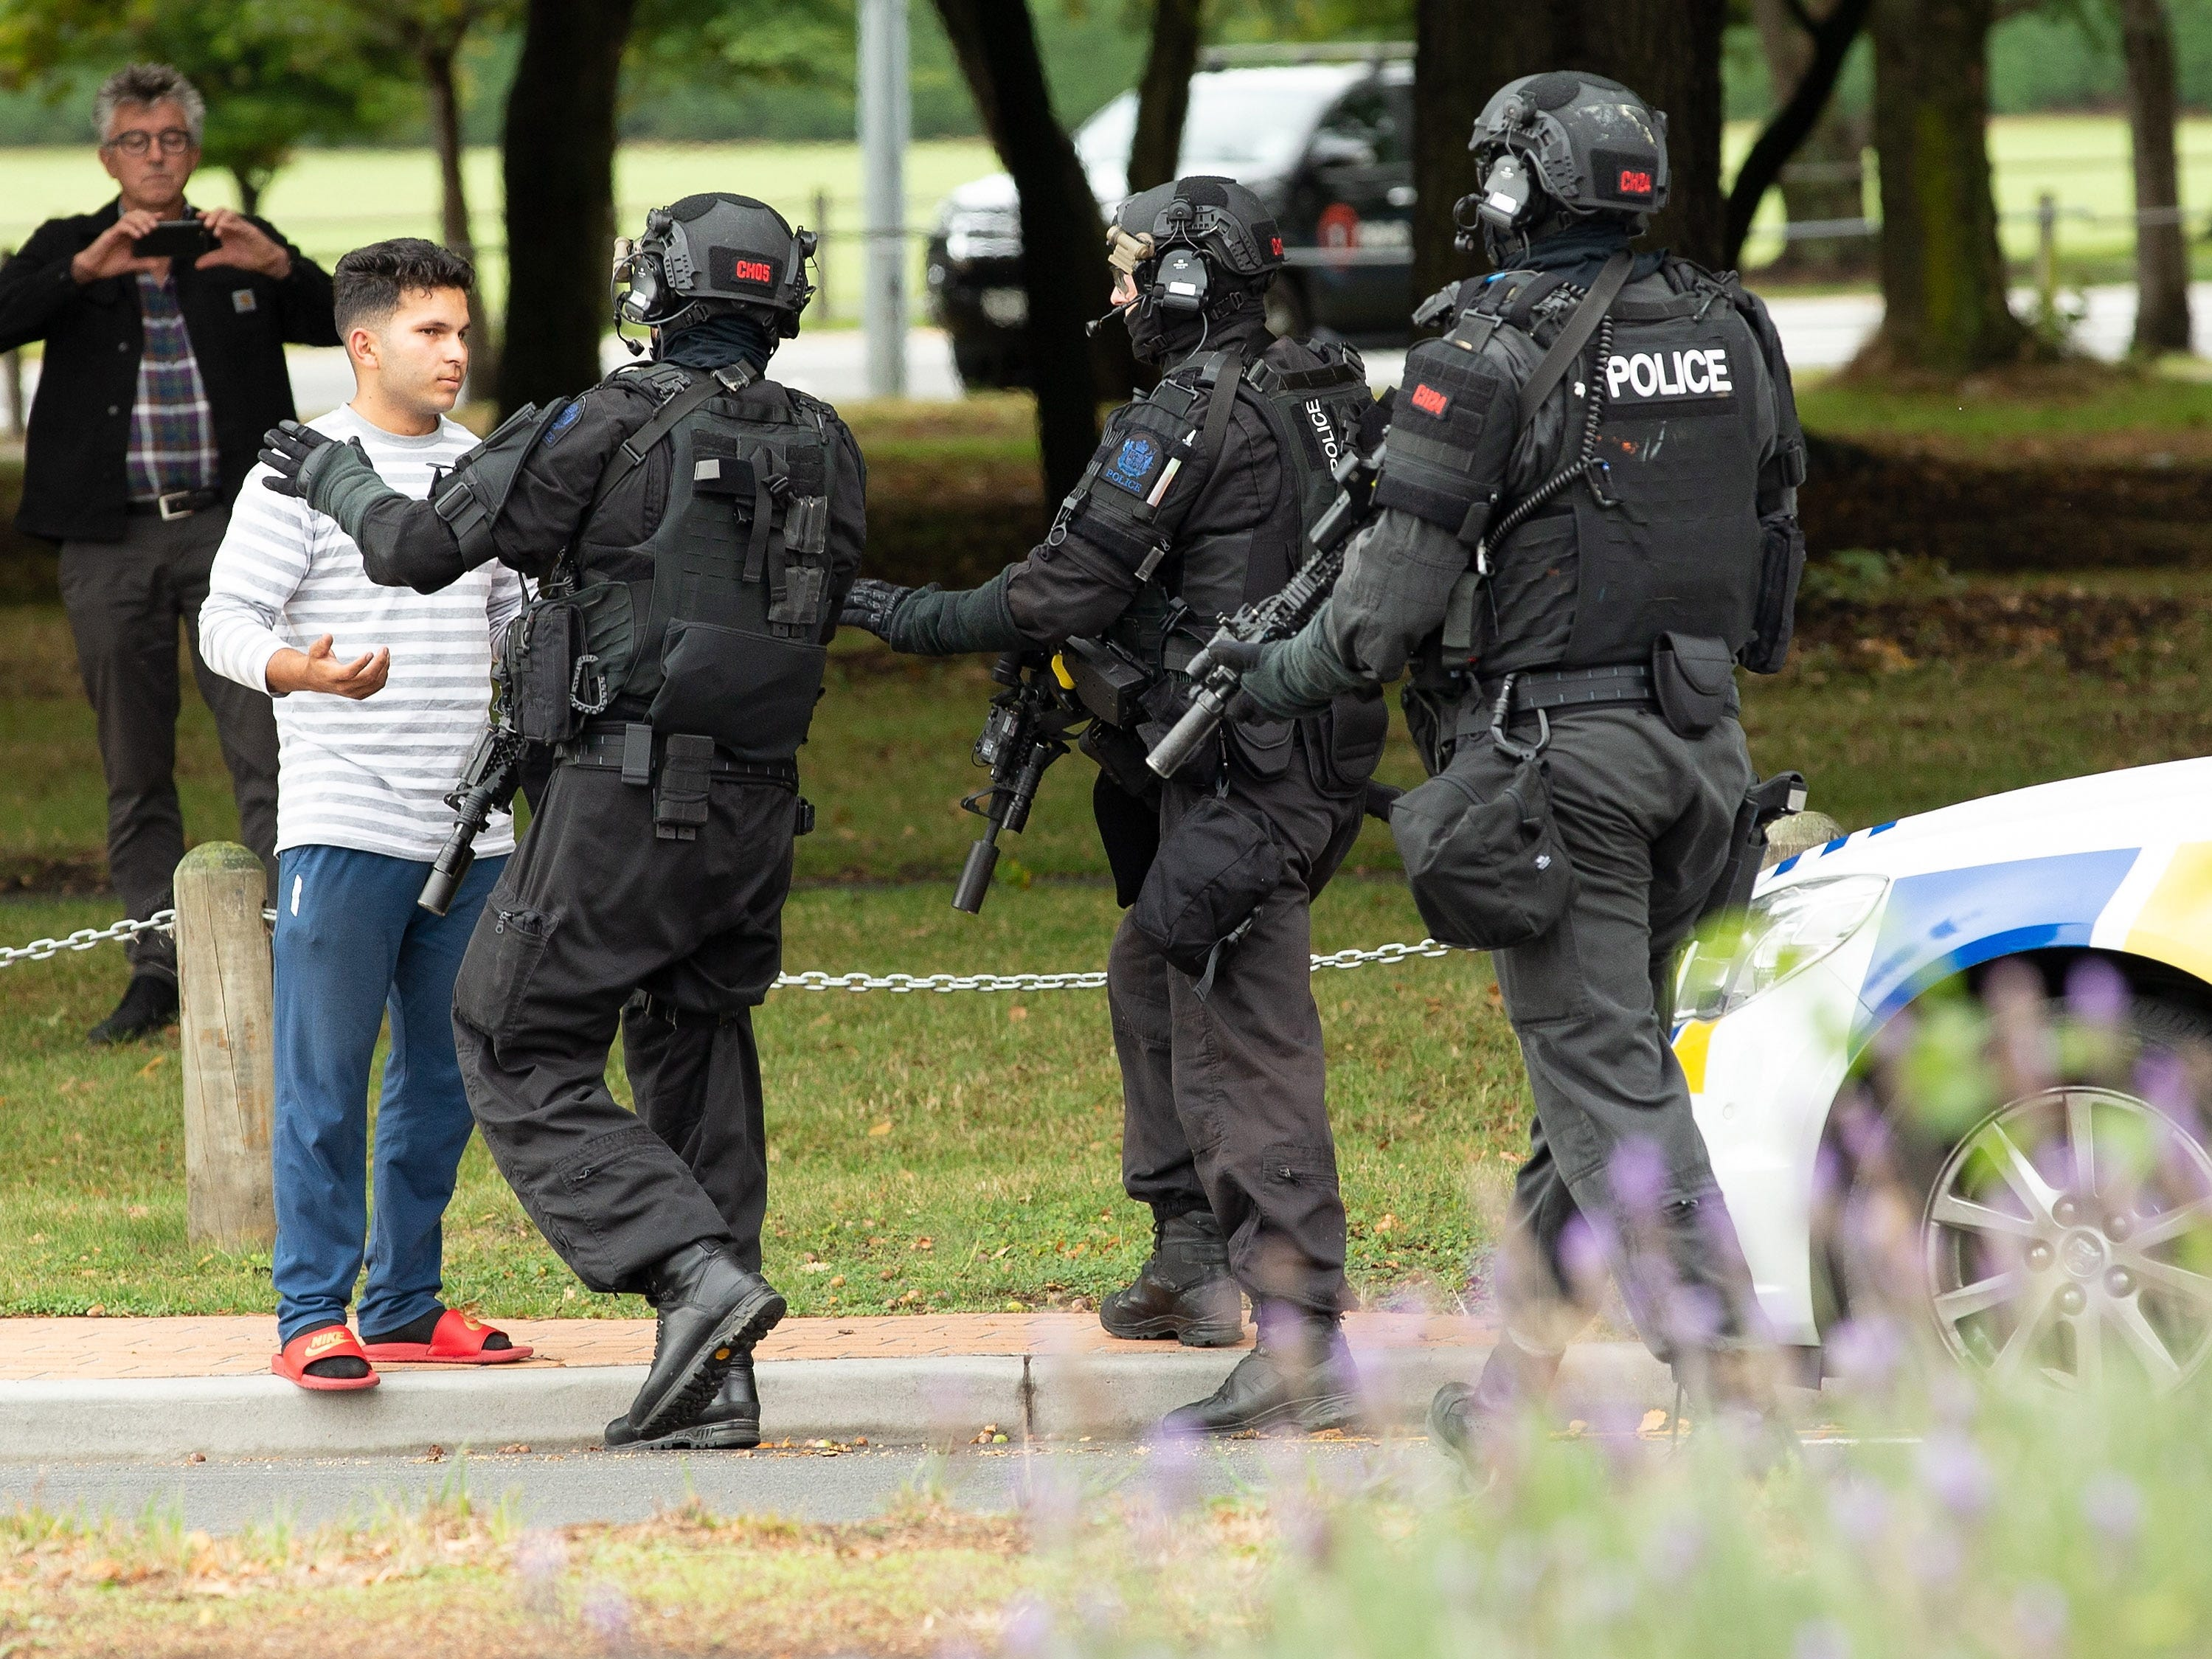 AOS (Armed Offenders Squad) officers push back members of the public following a shooting resulting in multiple fatalies and injuries at the Masjid Al Noor on Deans Avenue in Christchurch, New Zealand, 15 March 2019.